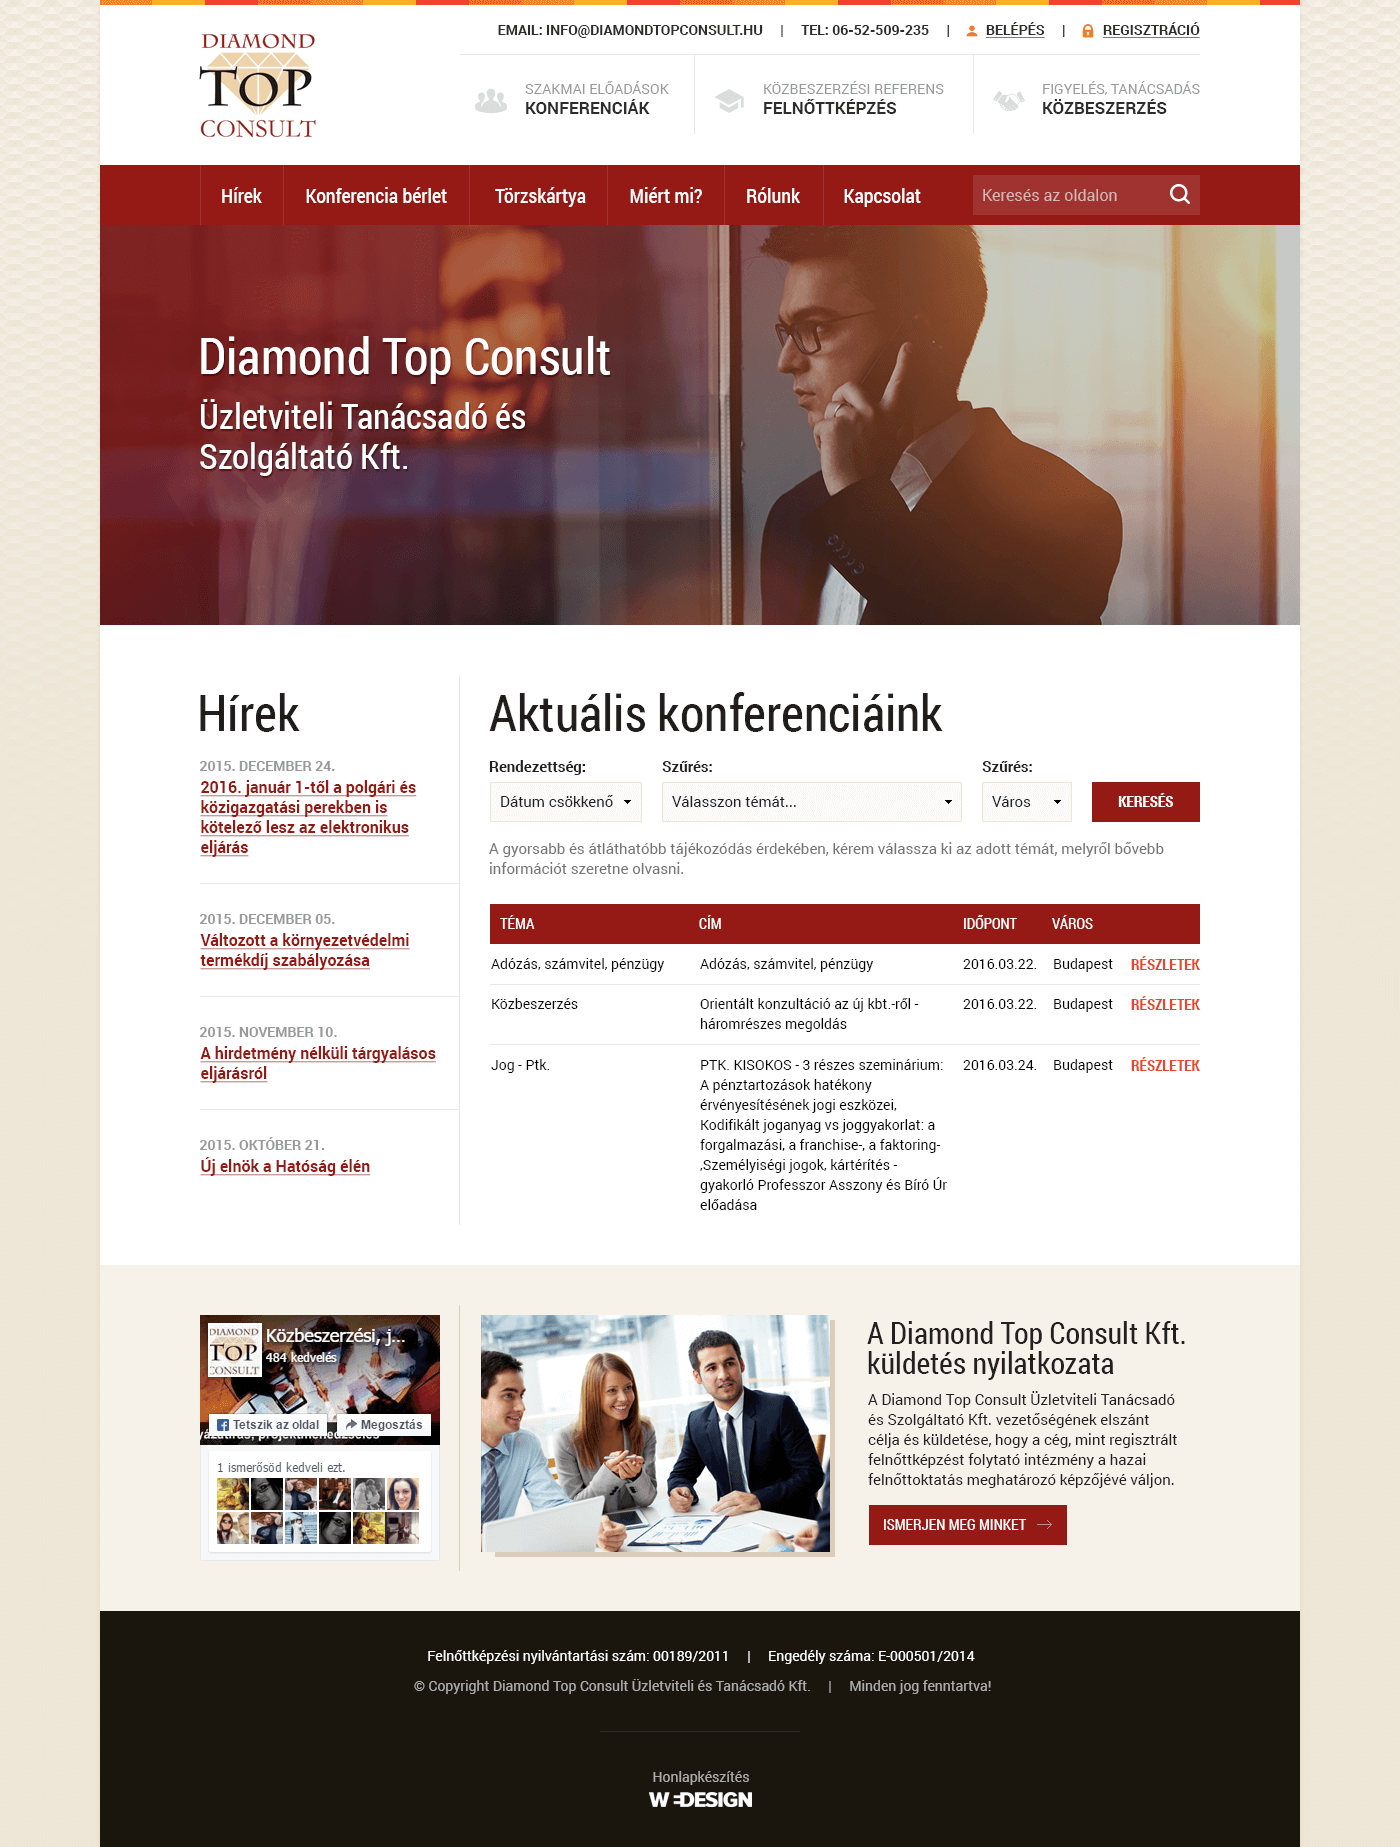 Diamond Top Consult